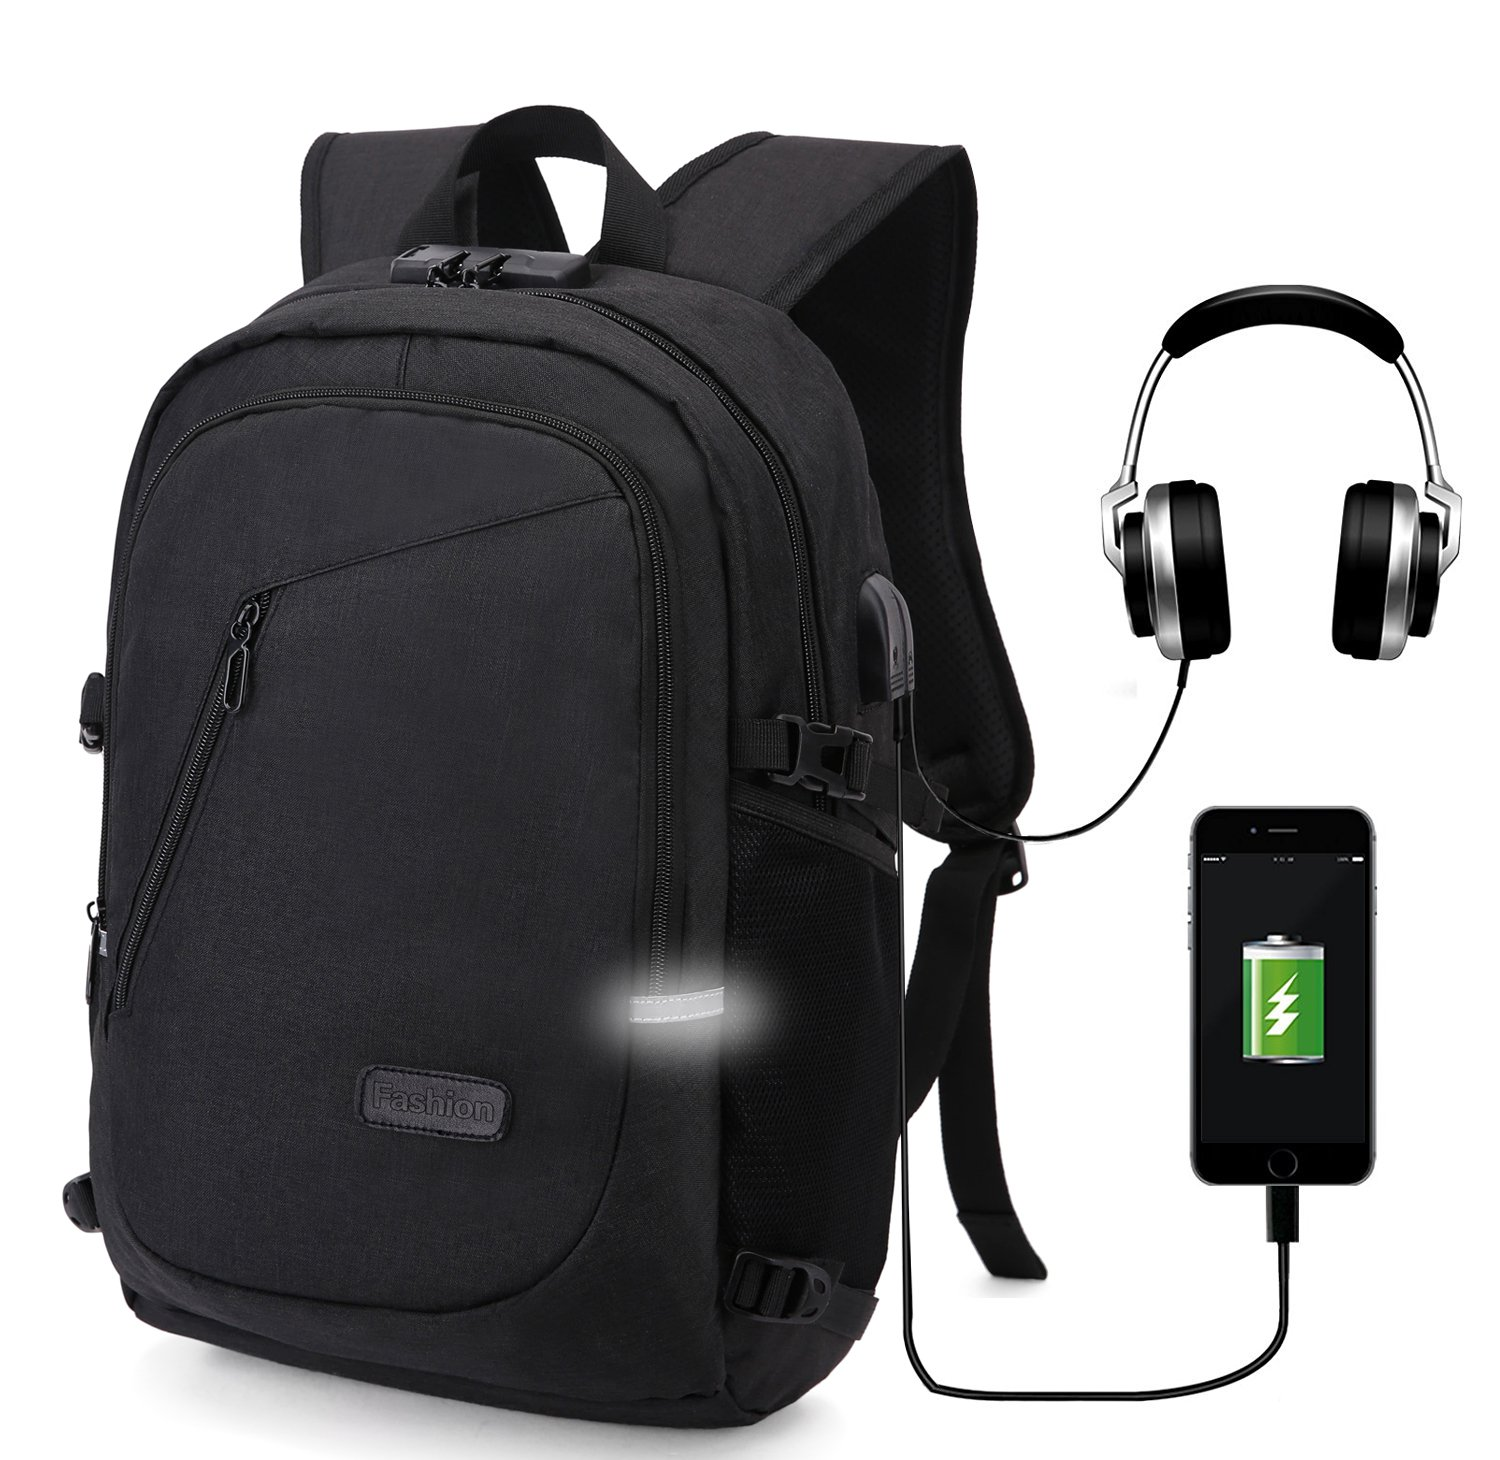 Travel Backpack,Anti Theft Water Resistant College School Bookbag for Women Men,Business Laptop/Compute Backpack with USB Charging Port & Headphone Interface Fits 15.6 Inch Laptop & Notebook,(Black)